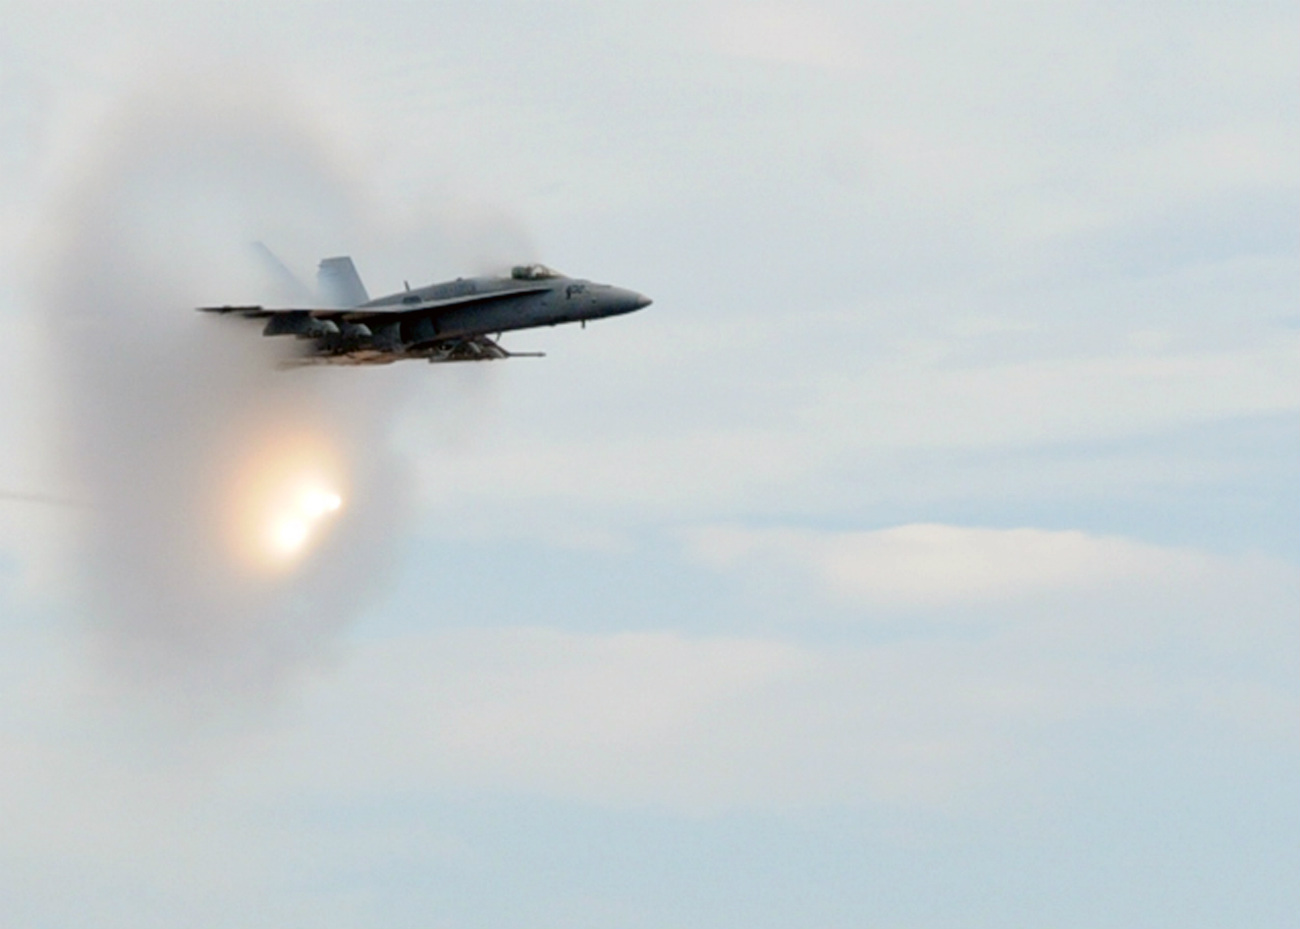 FA-18C Hornet dropping flares and breaking the sound barrier